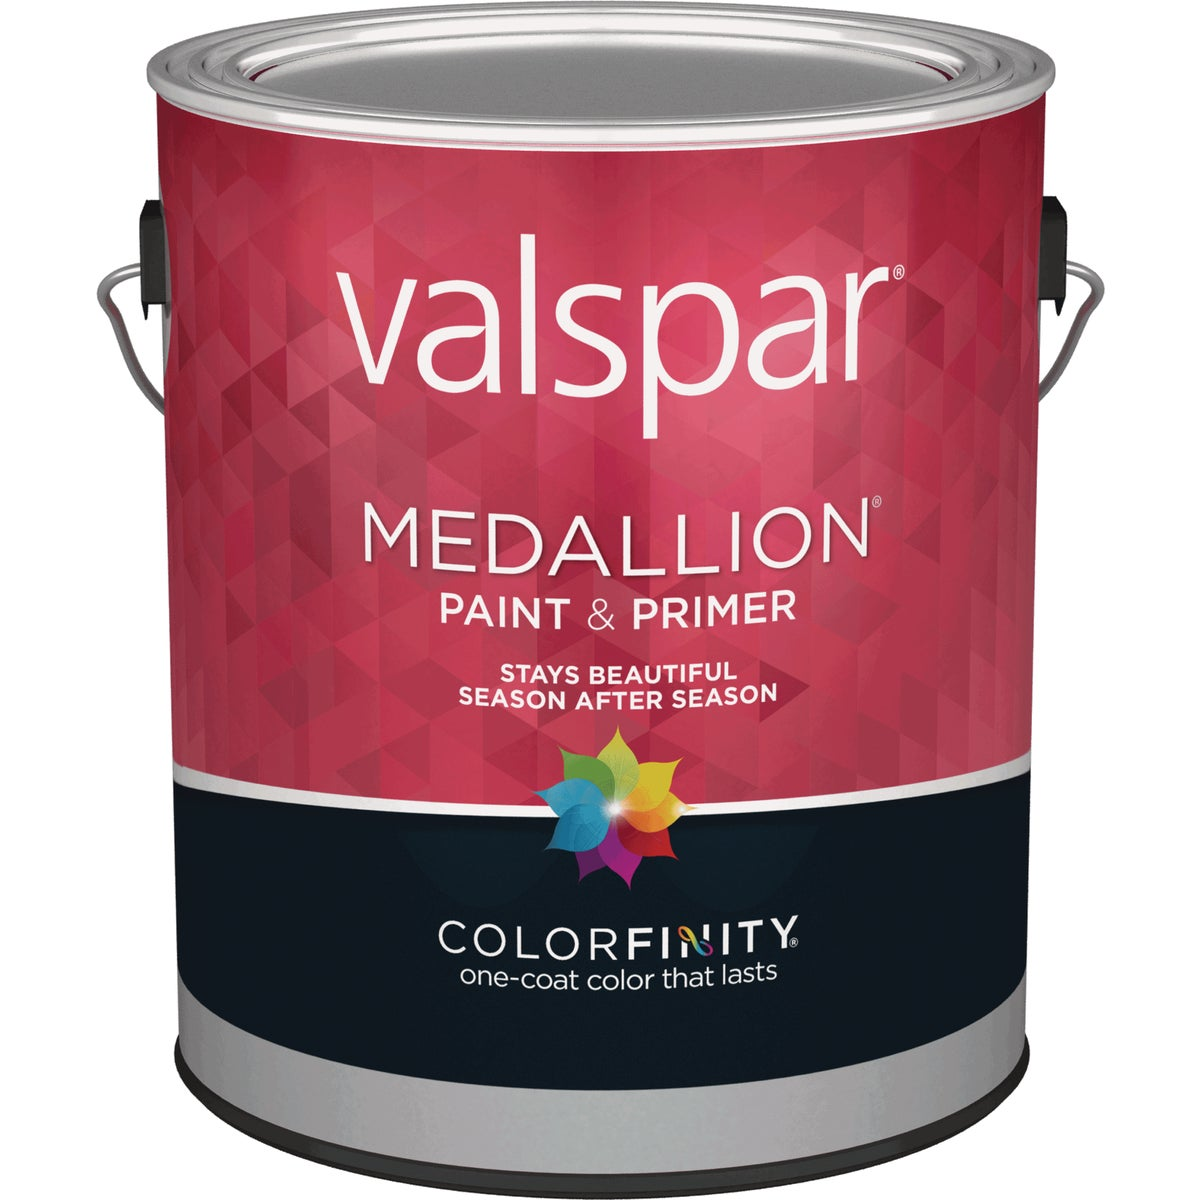 EXT SAT WHITE PAINT - 027.0004100.007 by Valspar Corp